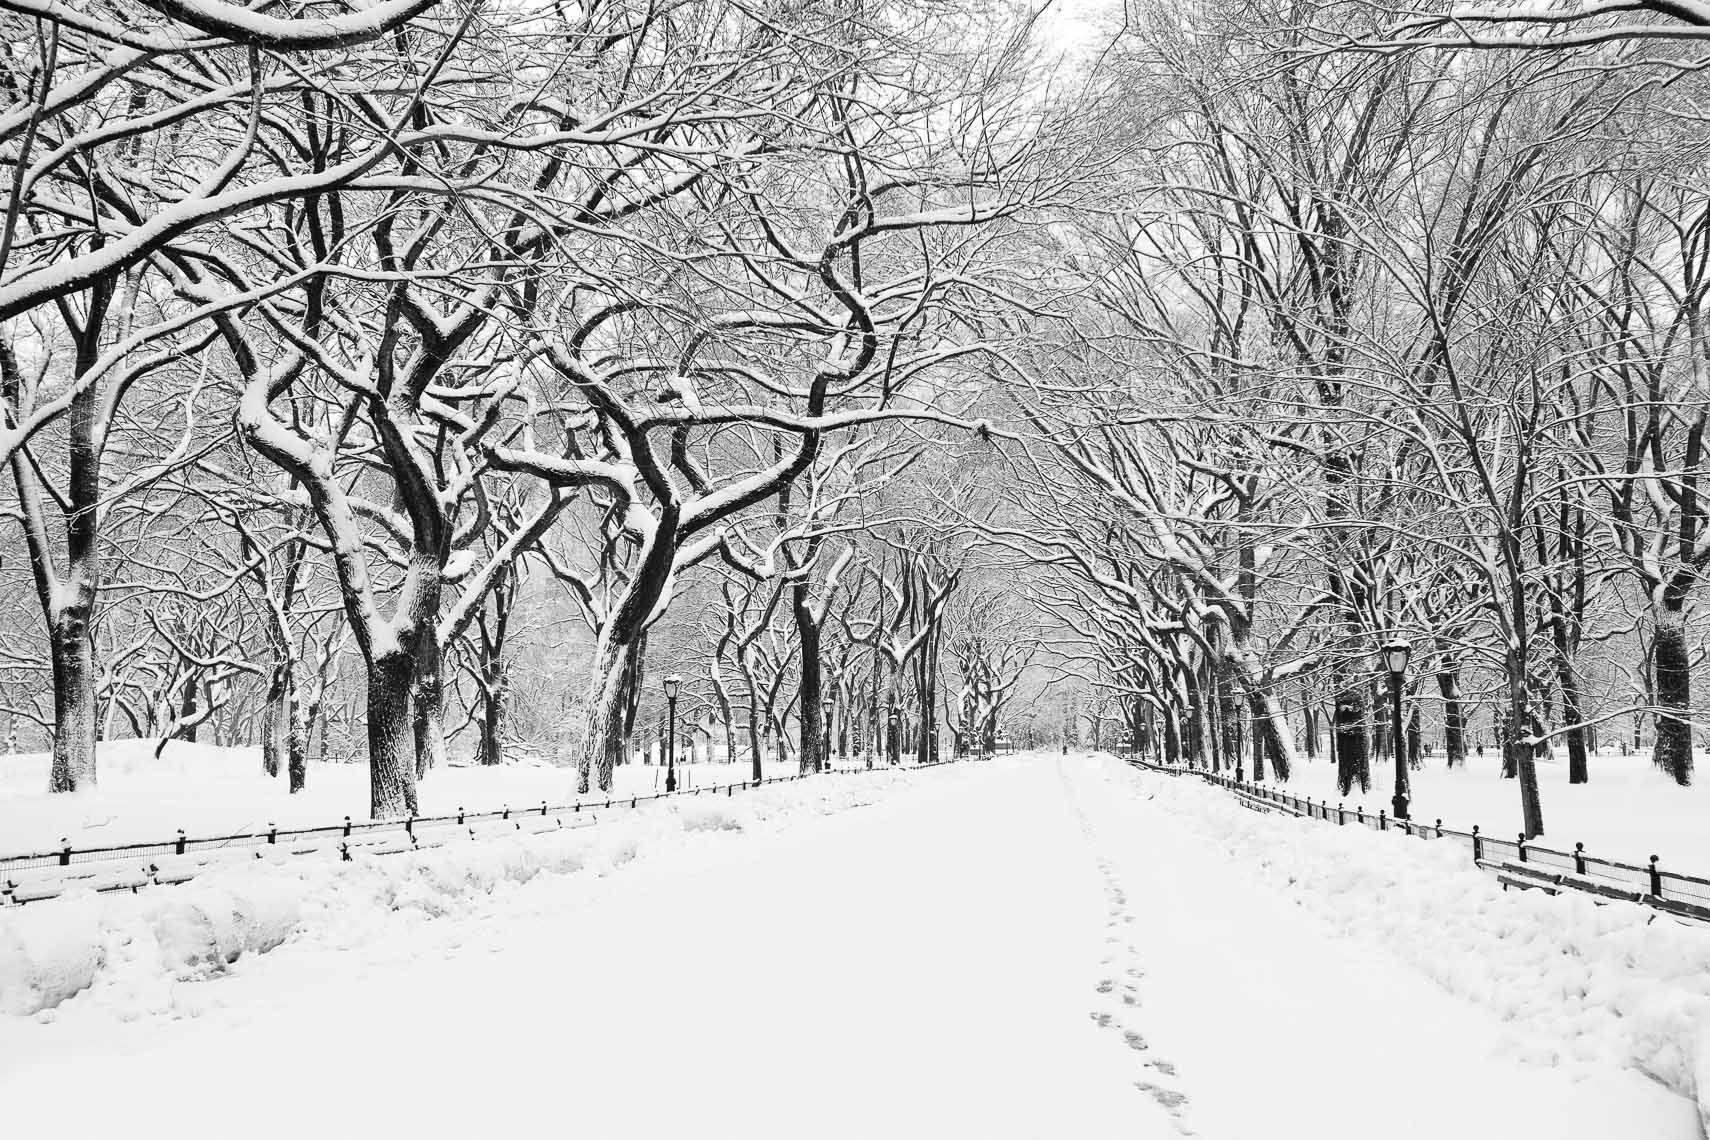 Winter, Central Park, NYC